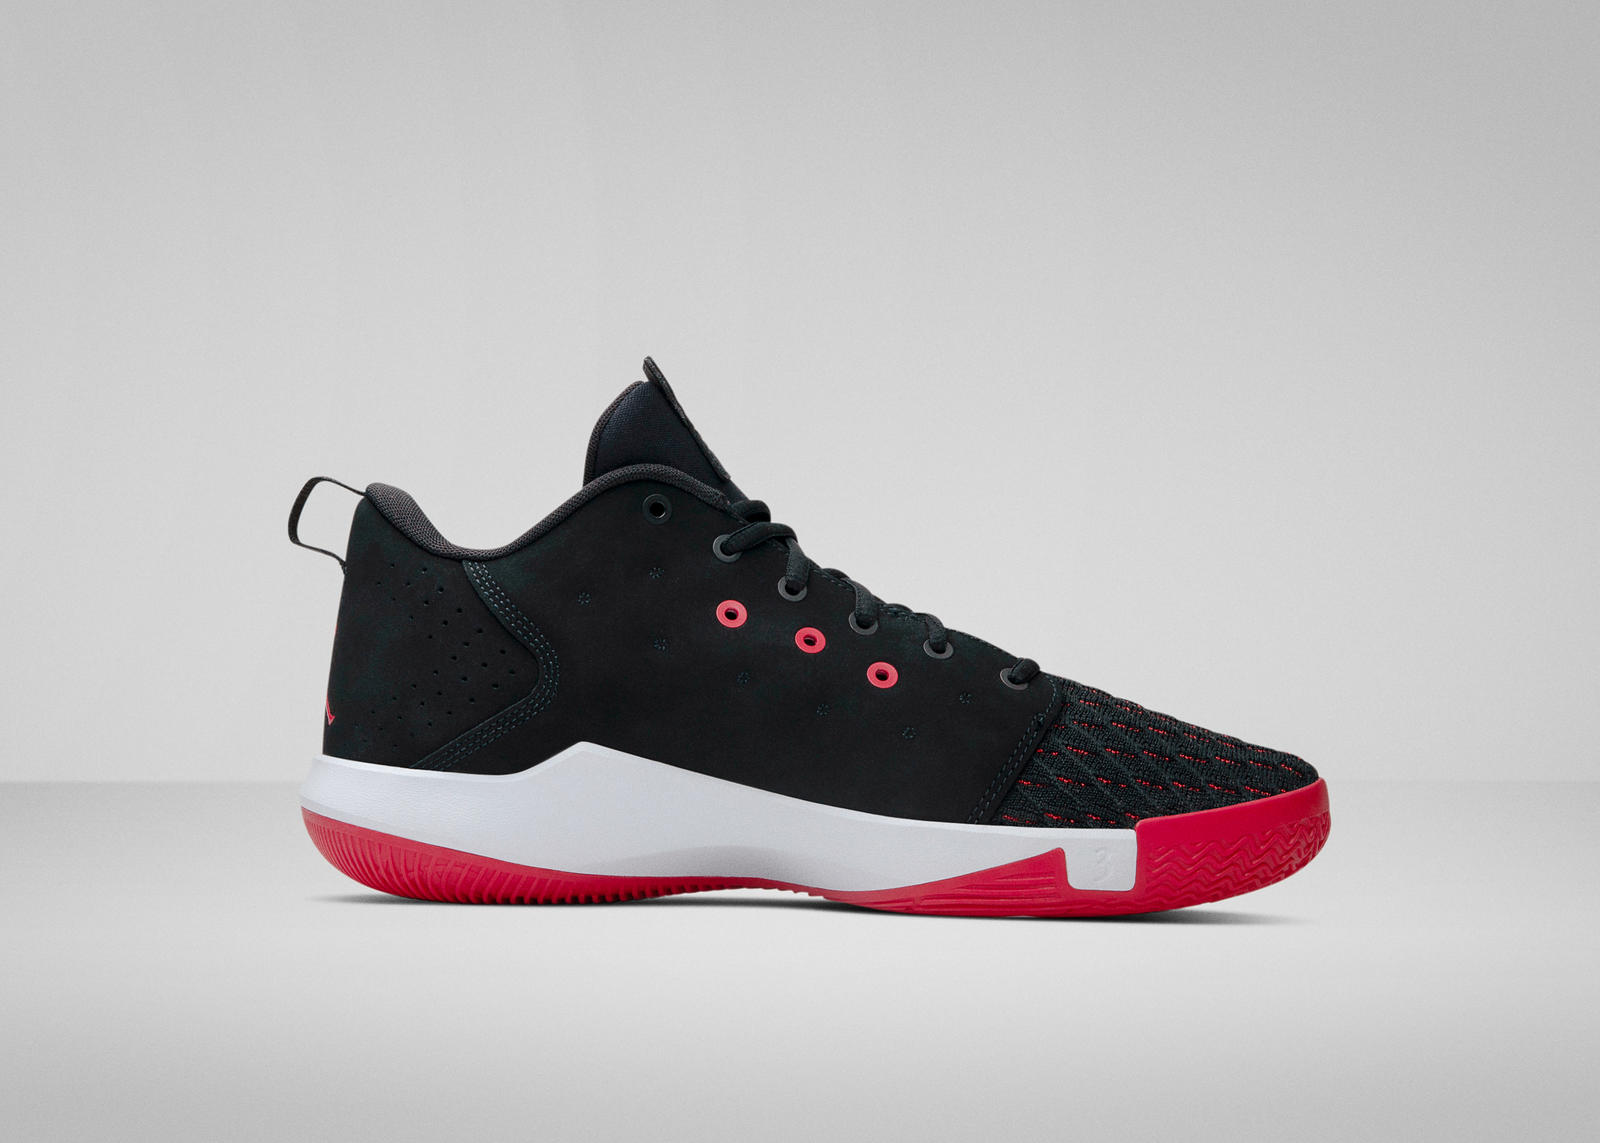 Jordan Chris Paul CP3 12 Official Images and Release Date